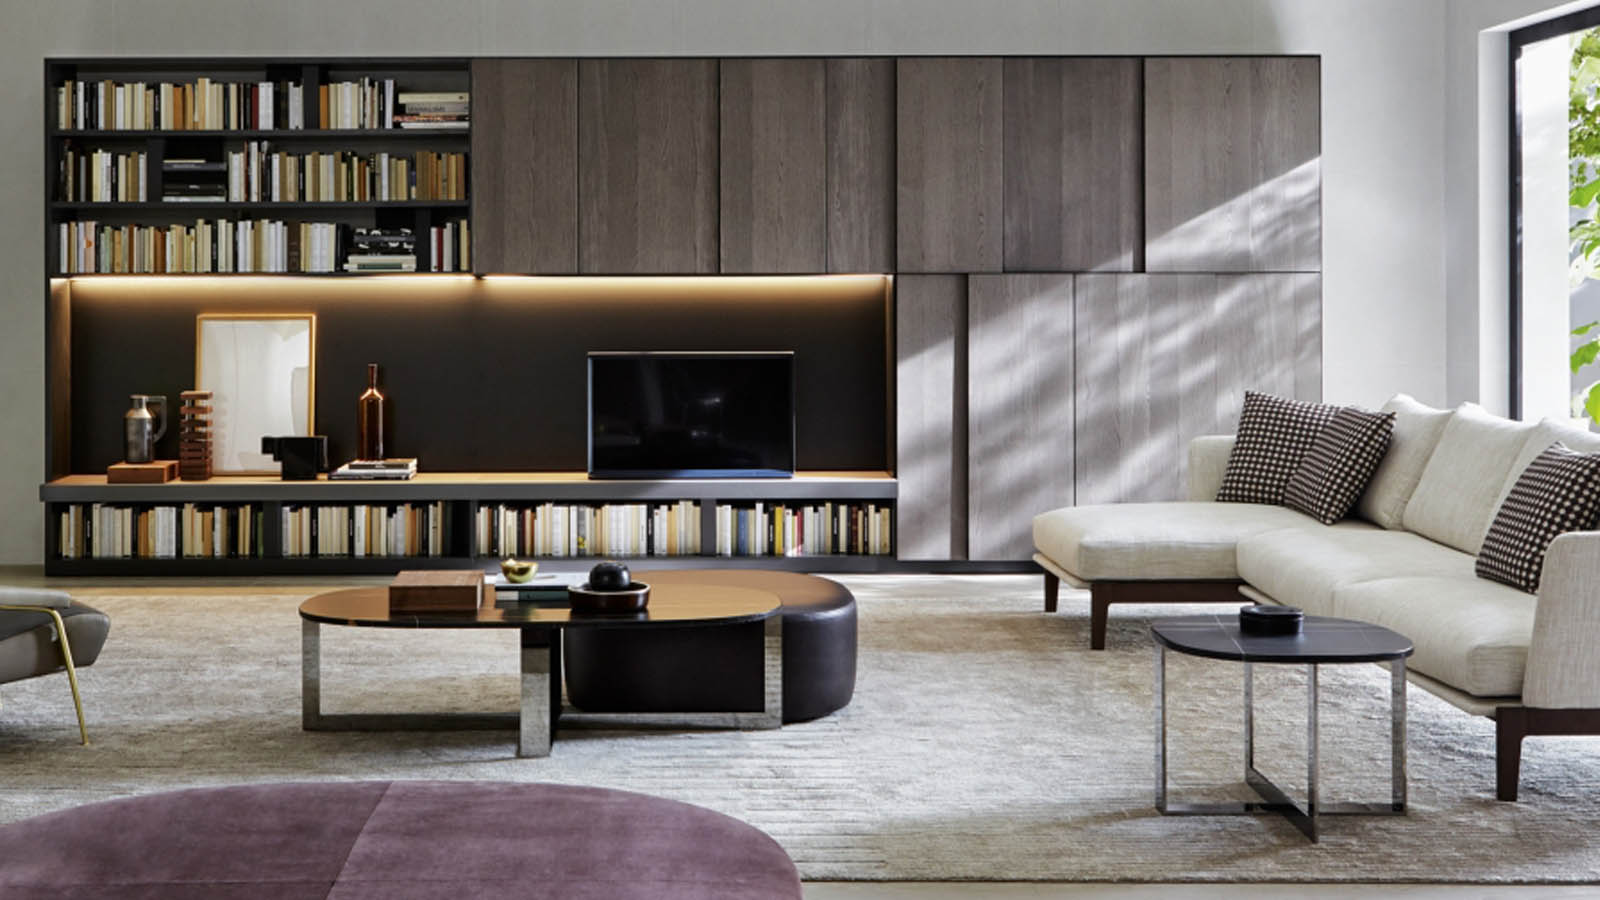 Molteni 505 a contemporary library